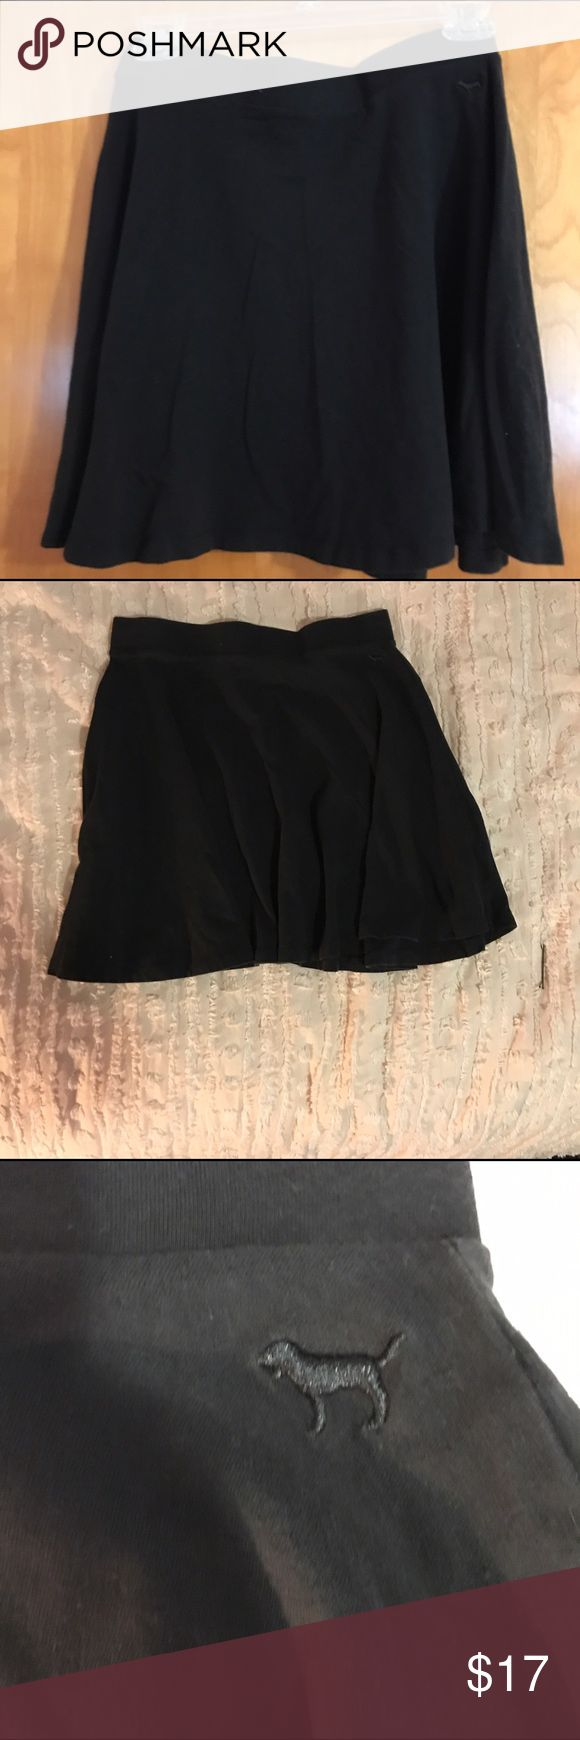 PINK Victoria's Secret Circle Skirt Black circle skirt. It's super cute and can look good with any style! PINK Victoria's Secret Skirts